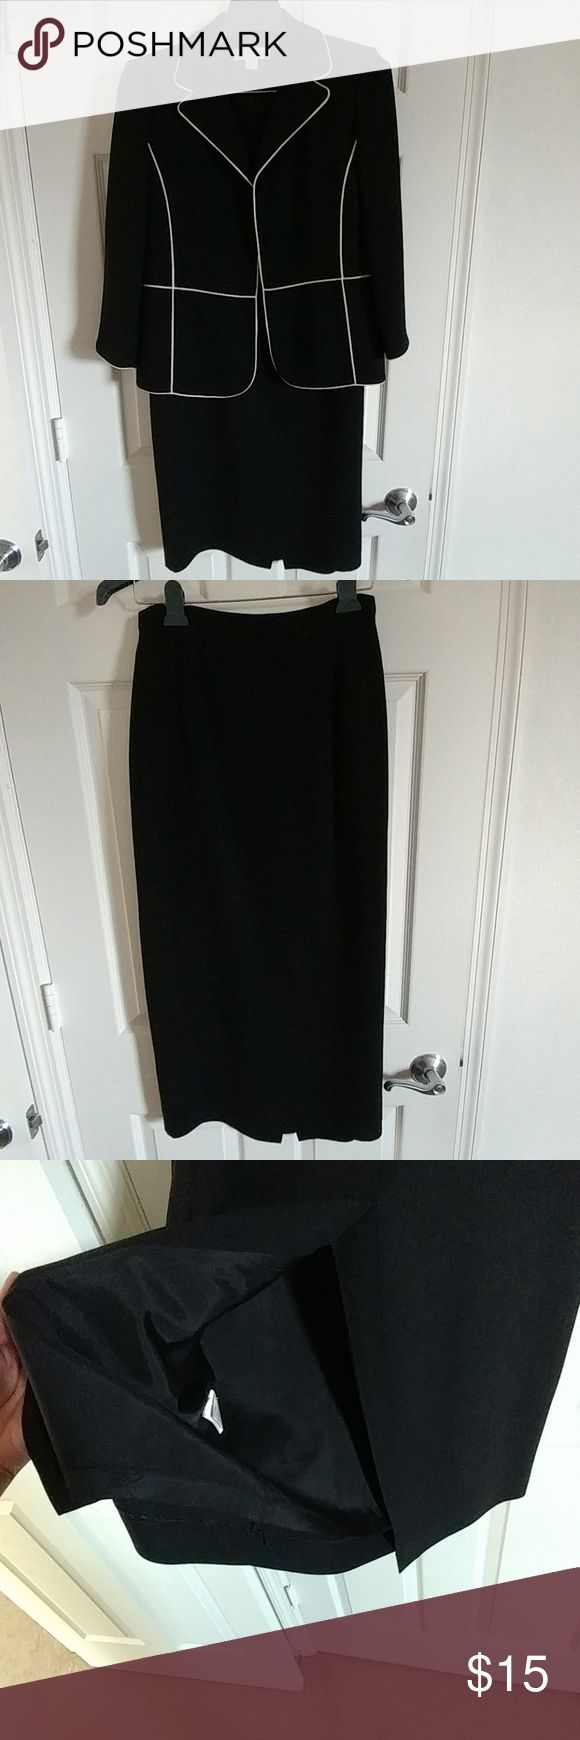 Black & Casual Corner suit Black suit jacket with white corded trim, 3/4 sleeve. Black skirt with split in back. Both are fully lined and. Very comfortable fit. Casual Corner Skirts Skirt Sets